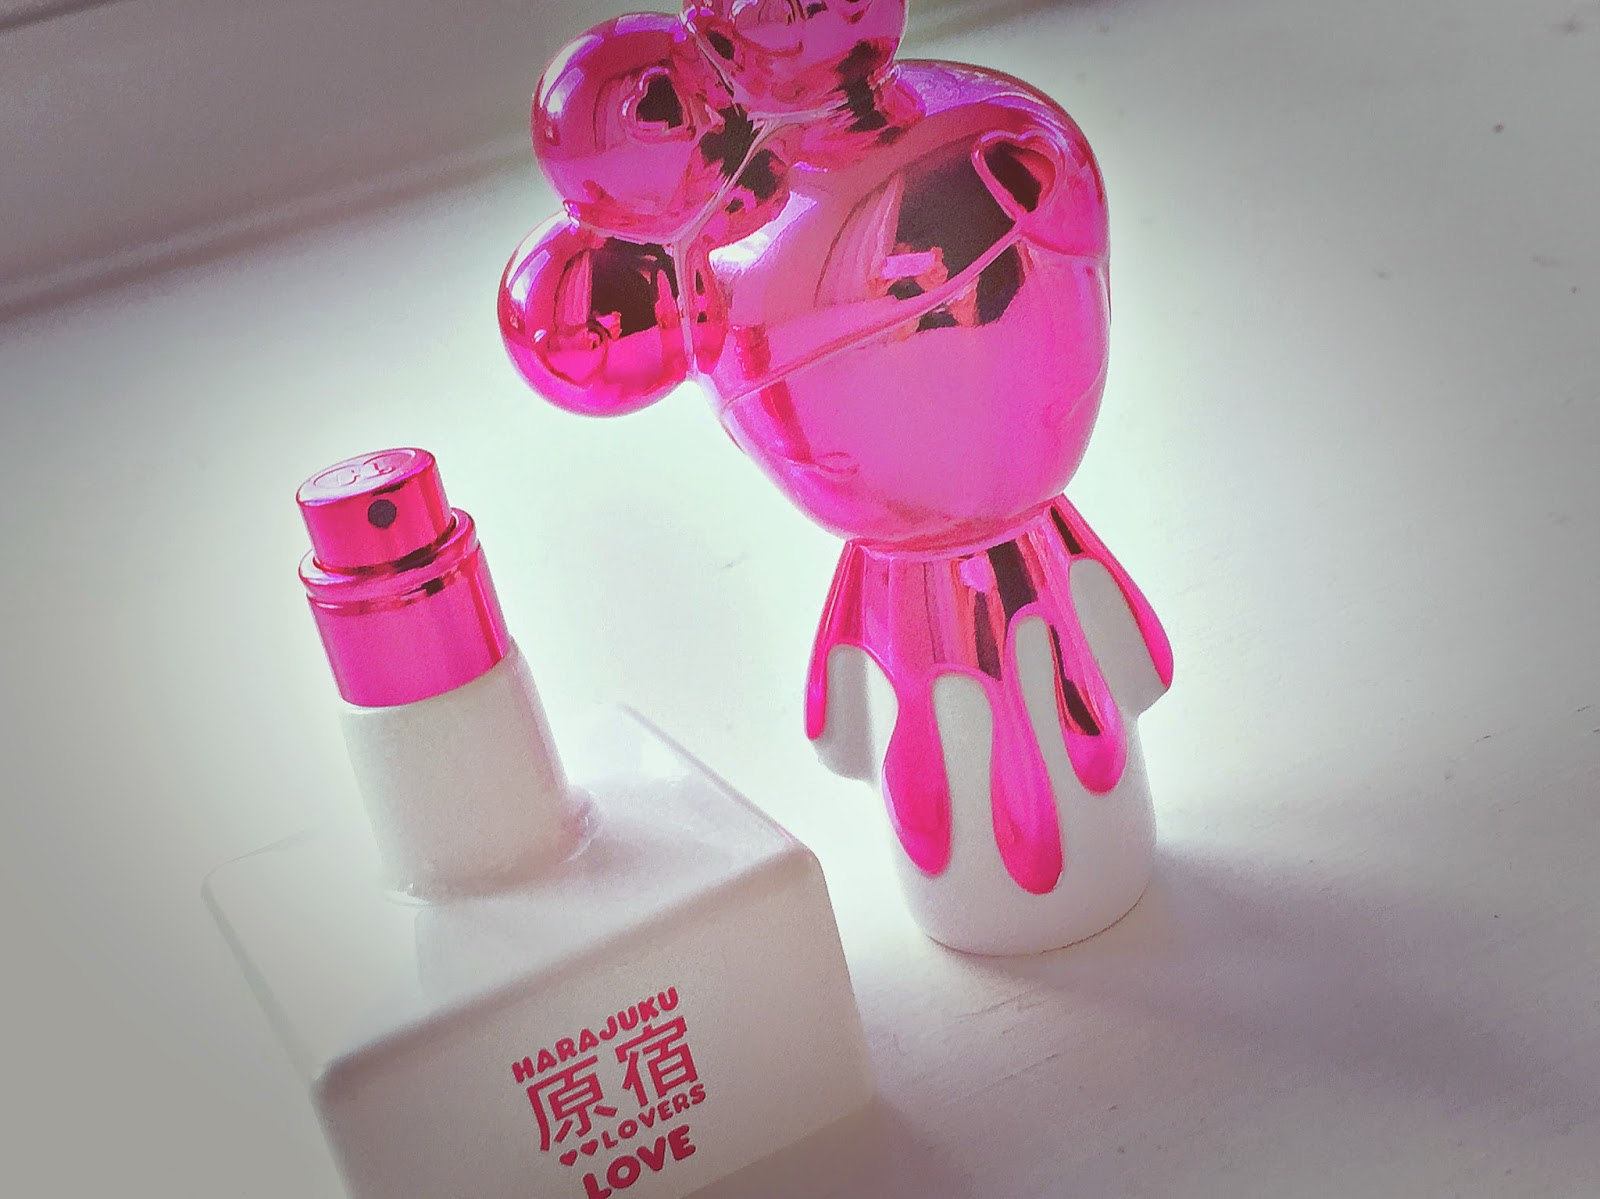 Harajuku Lovers Pop Electric Collection: Love Fragrance